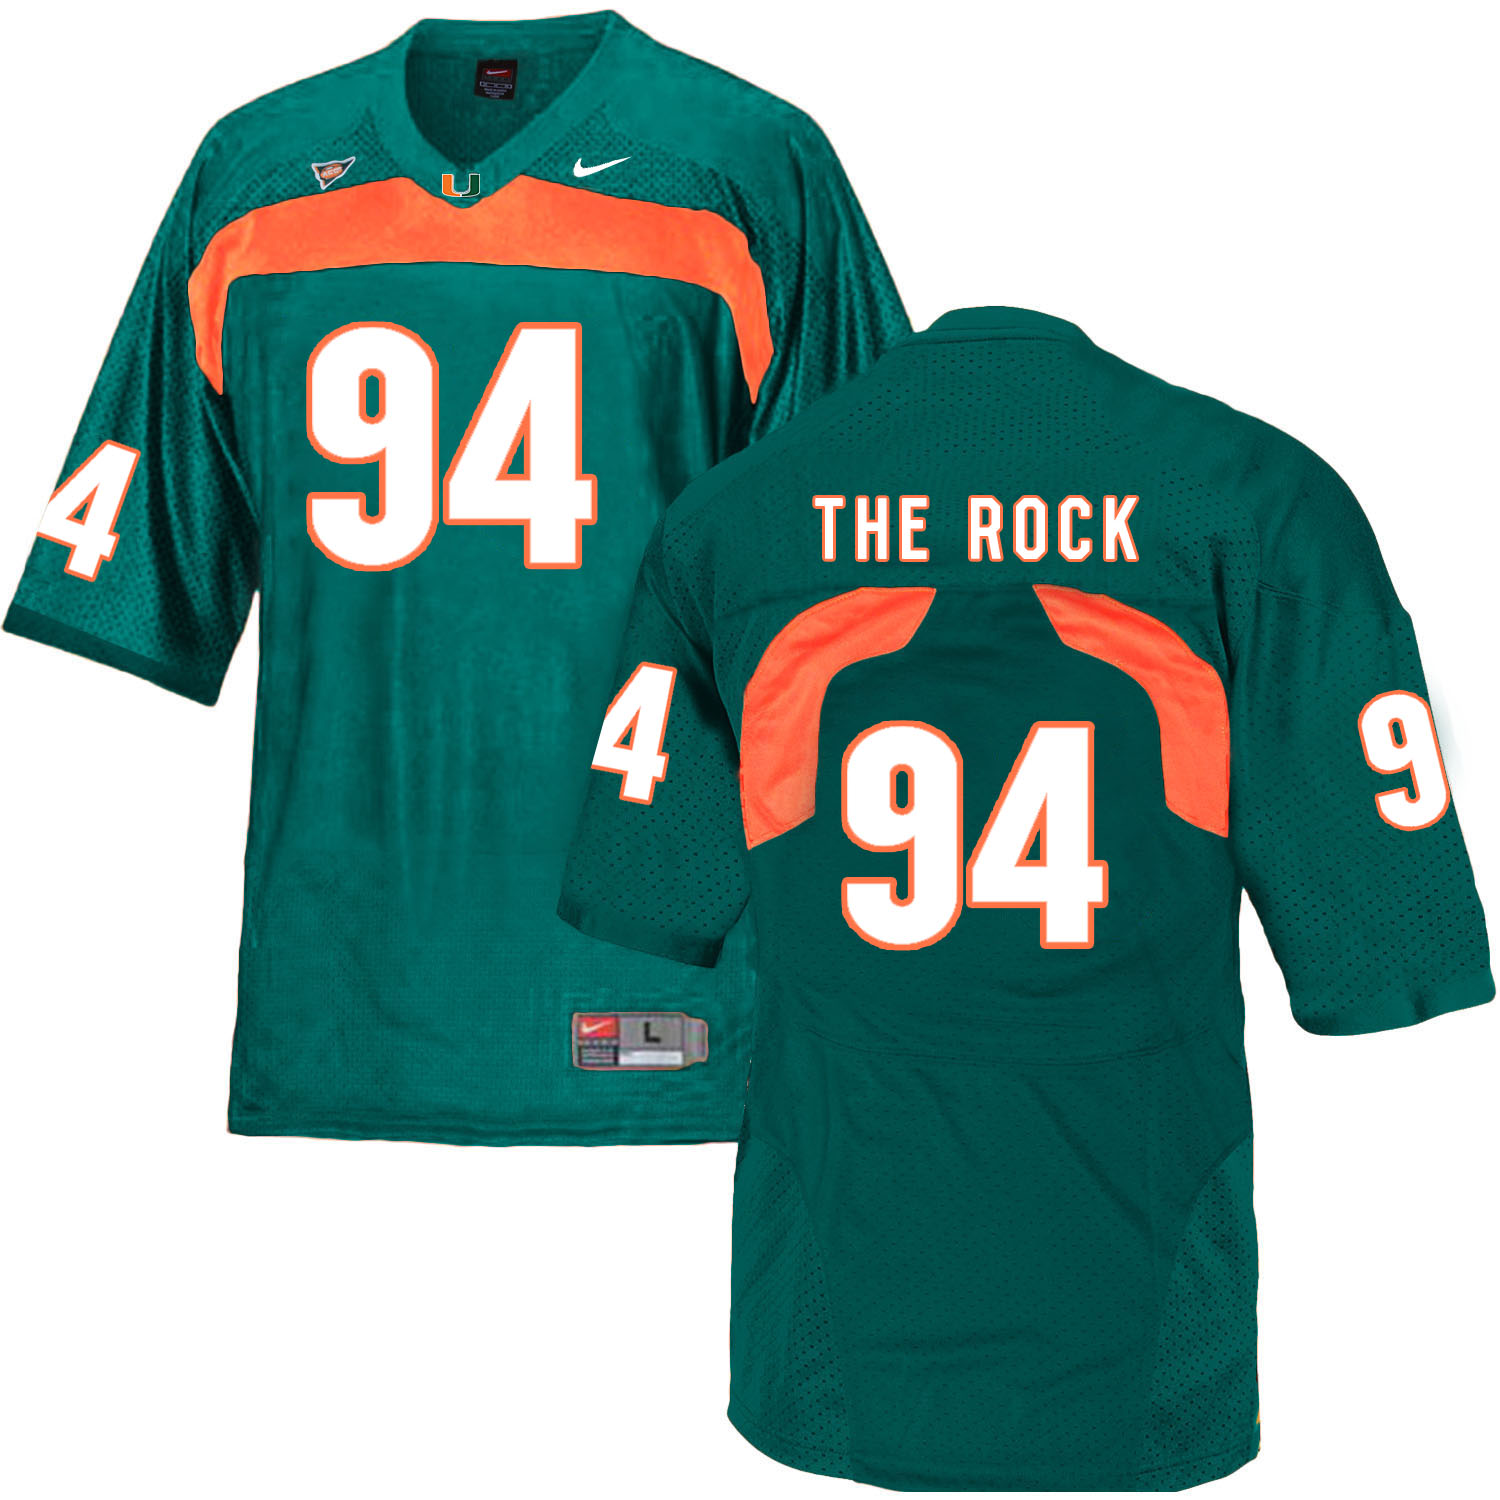 Miami Hurricanes 94 The Rock Green College Football Jersey